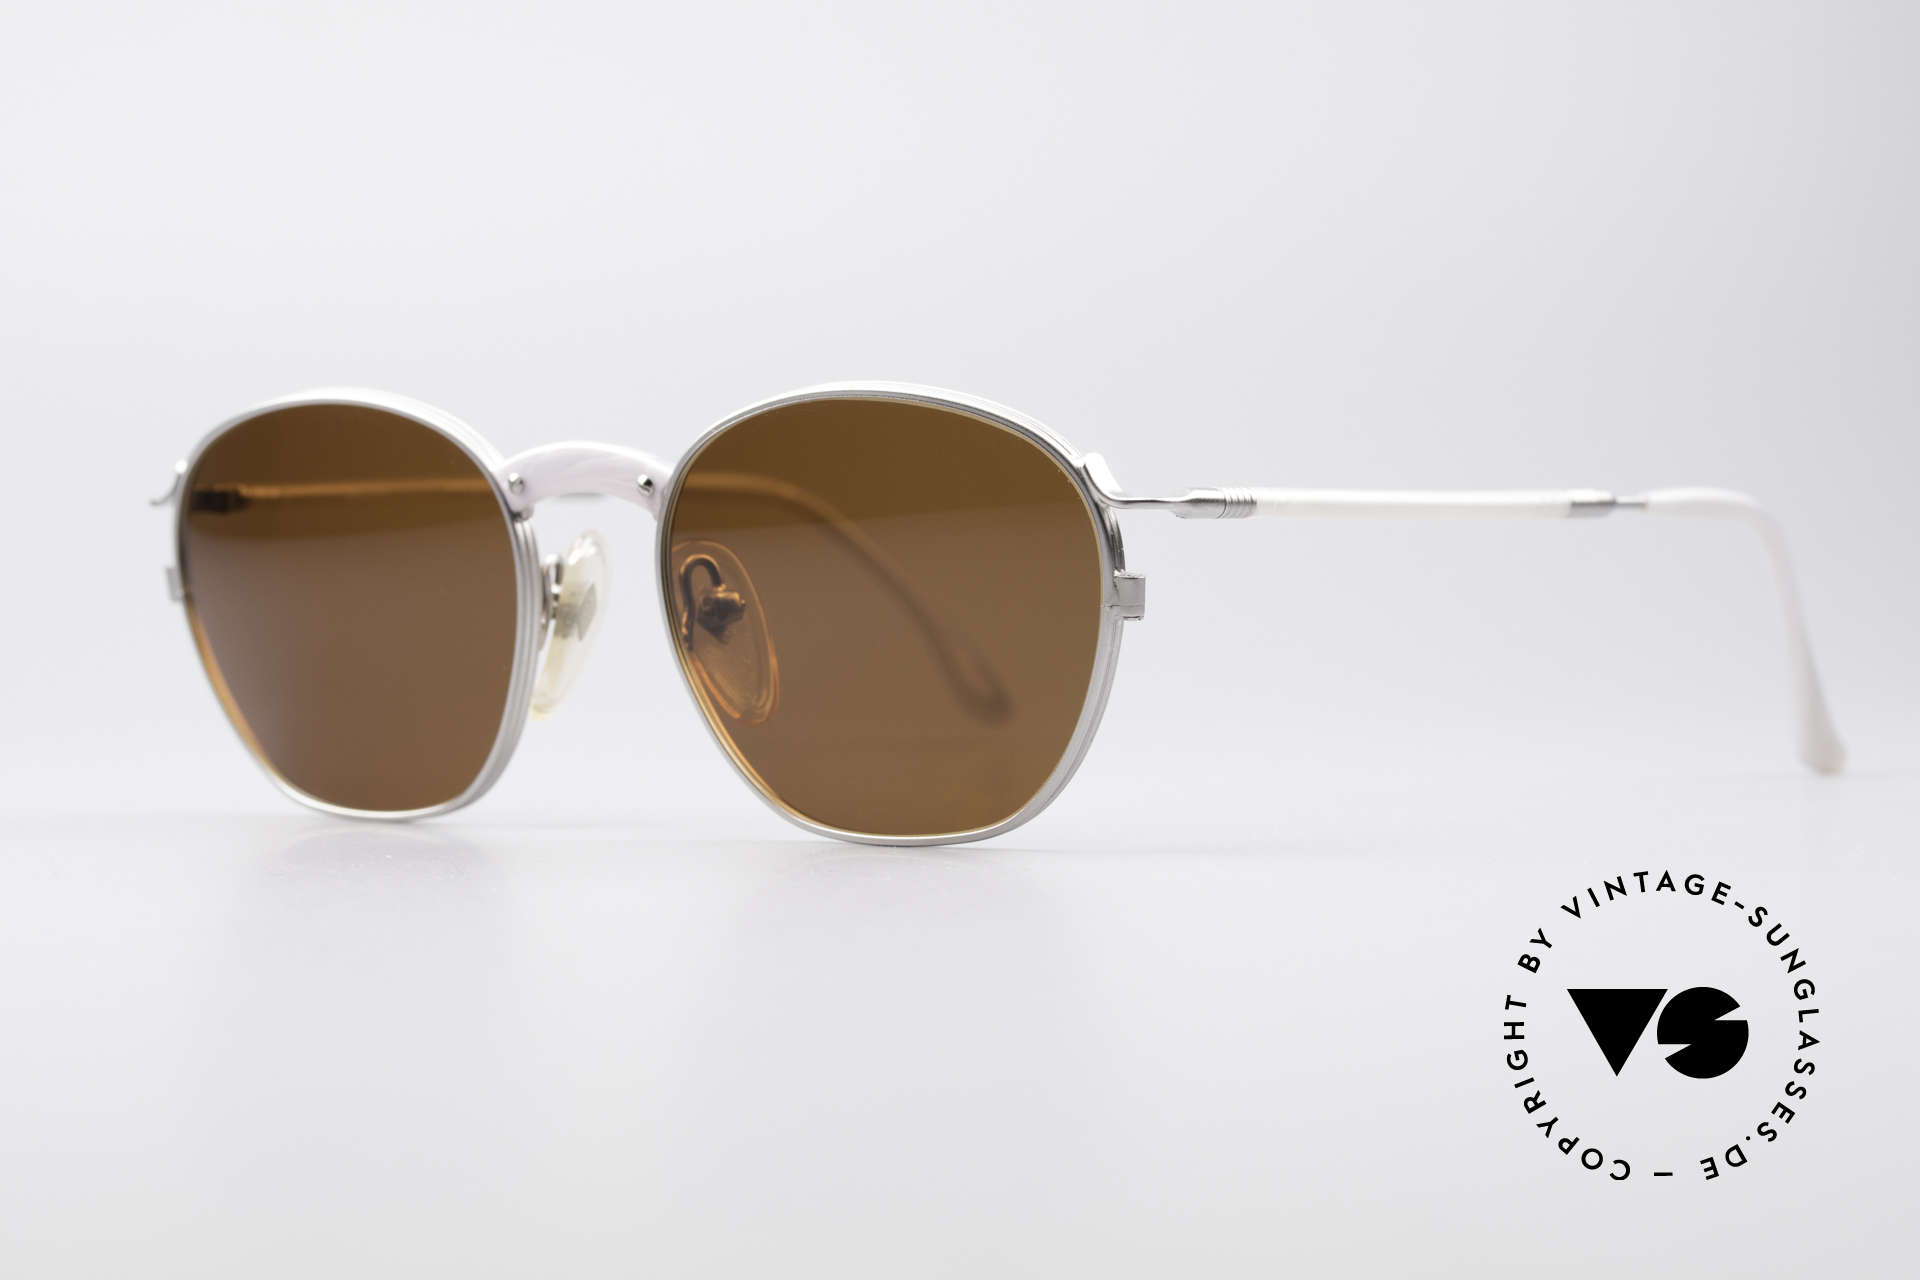 Jean Paul Gaultier 55-1271 JPG Vintage Sunglasses, simply a timeless classic in top-notch craftsmanship, Made for Men and Women